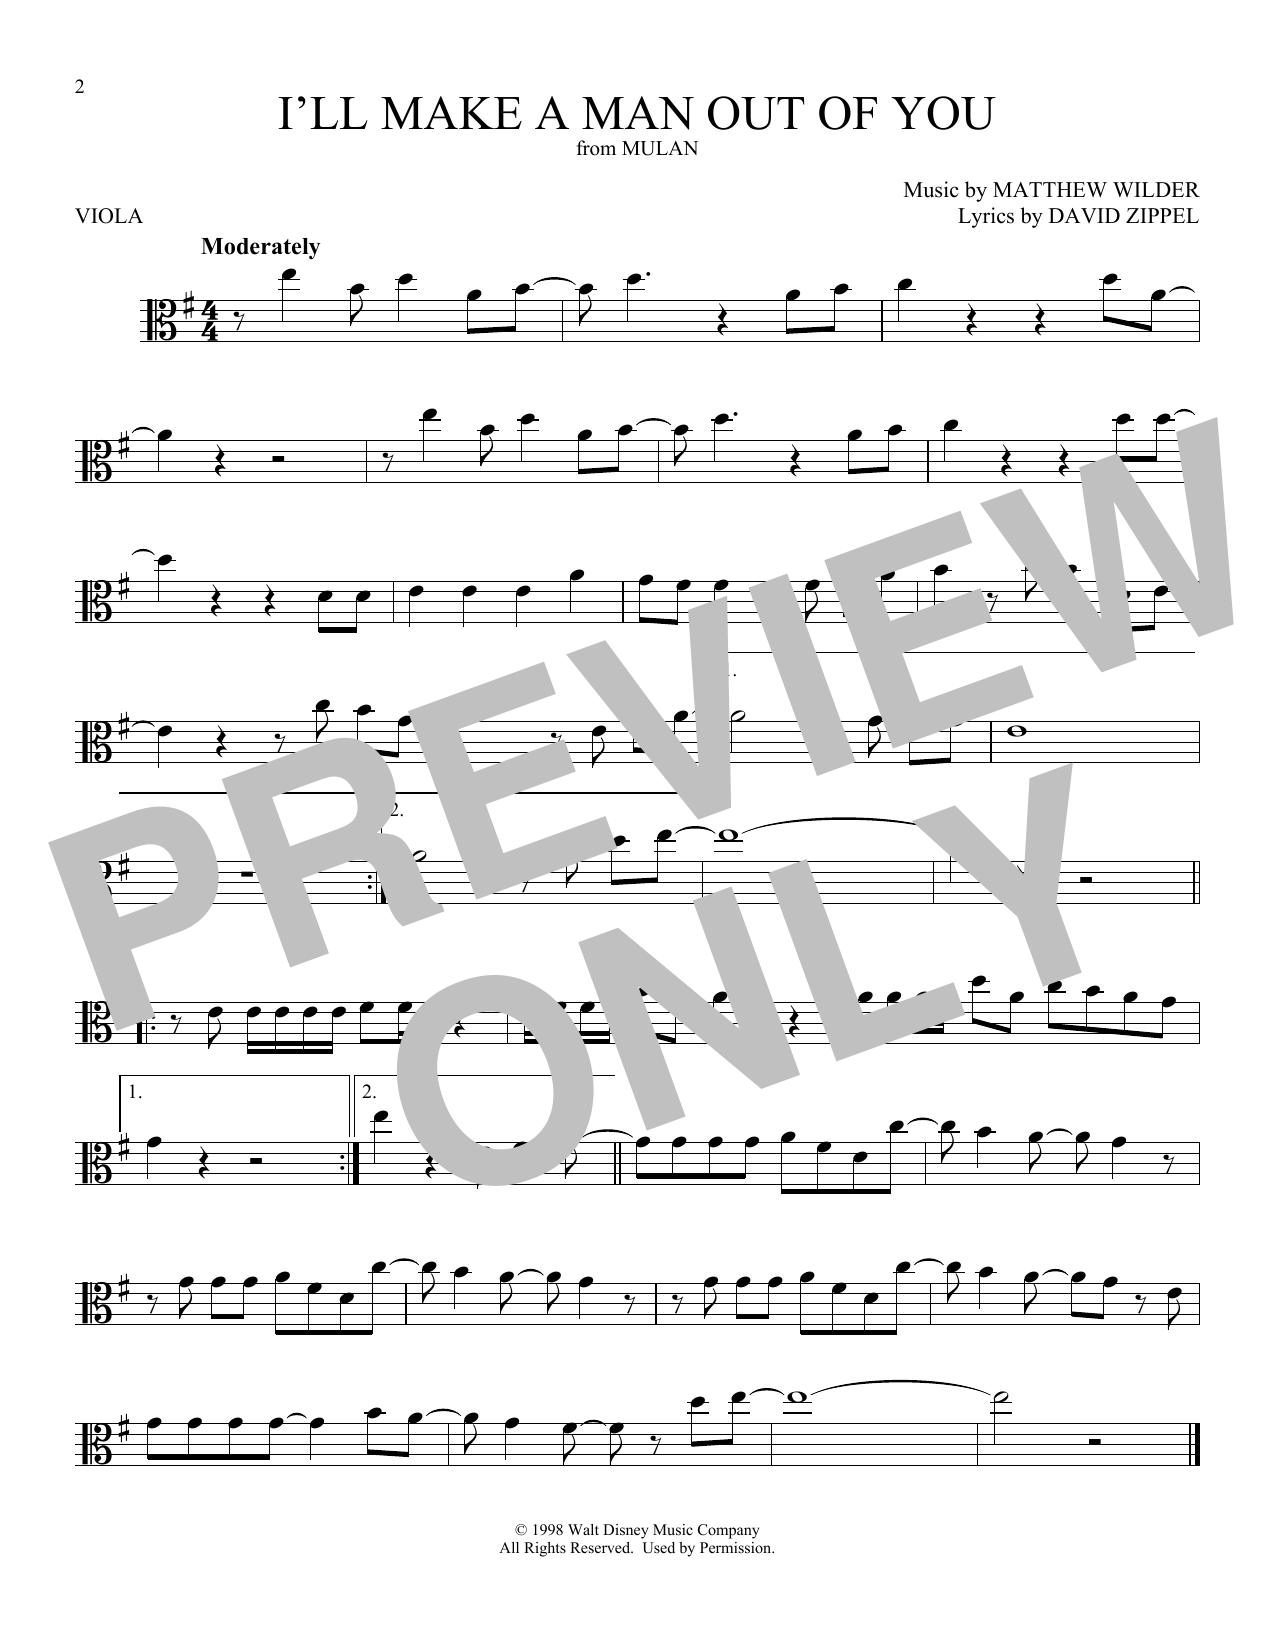 I'll Make A Man Out Of You (Viola Solo) - Print Sheet Music Now